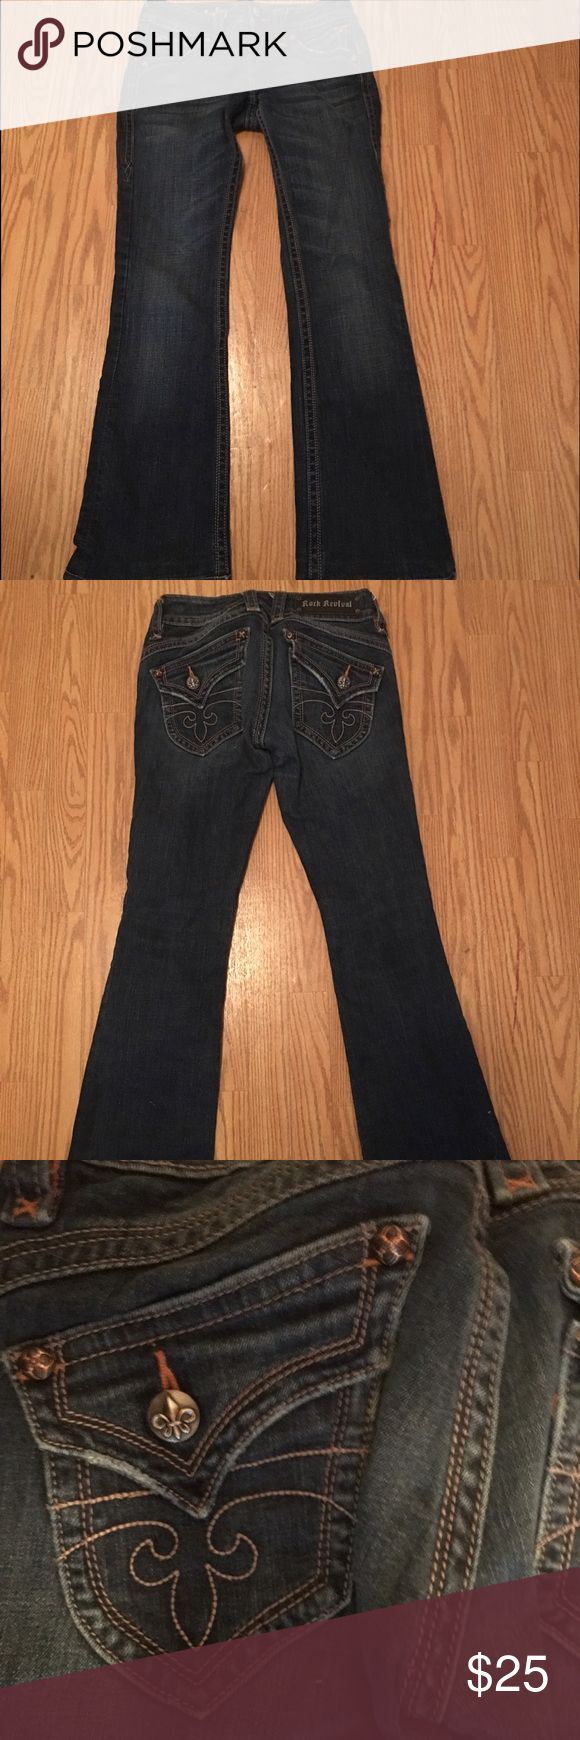 Women's Rock Revival Jeans Women's Rock Revival Jeans Size 27 Bootcut Worn once Great Condition! Rock Revival Jeans Boot Cut